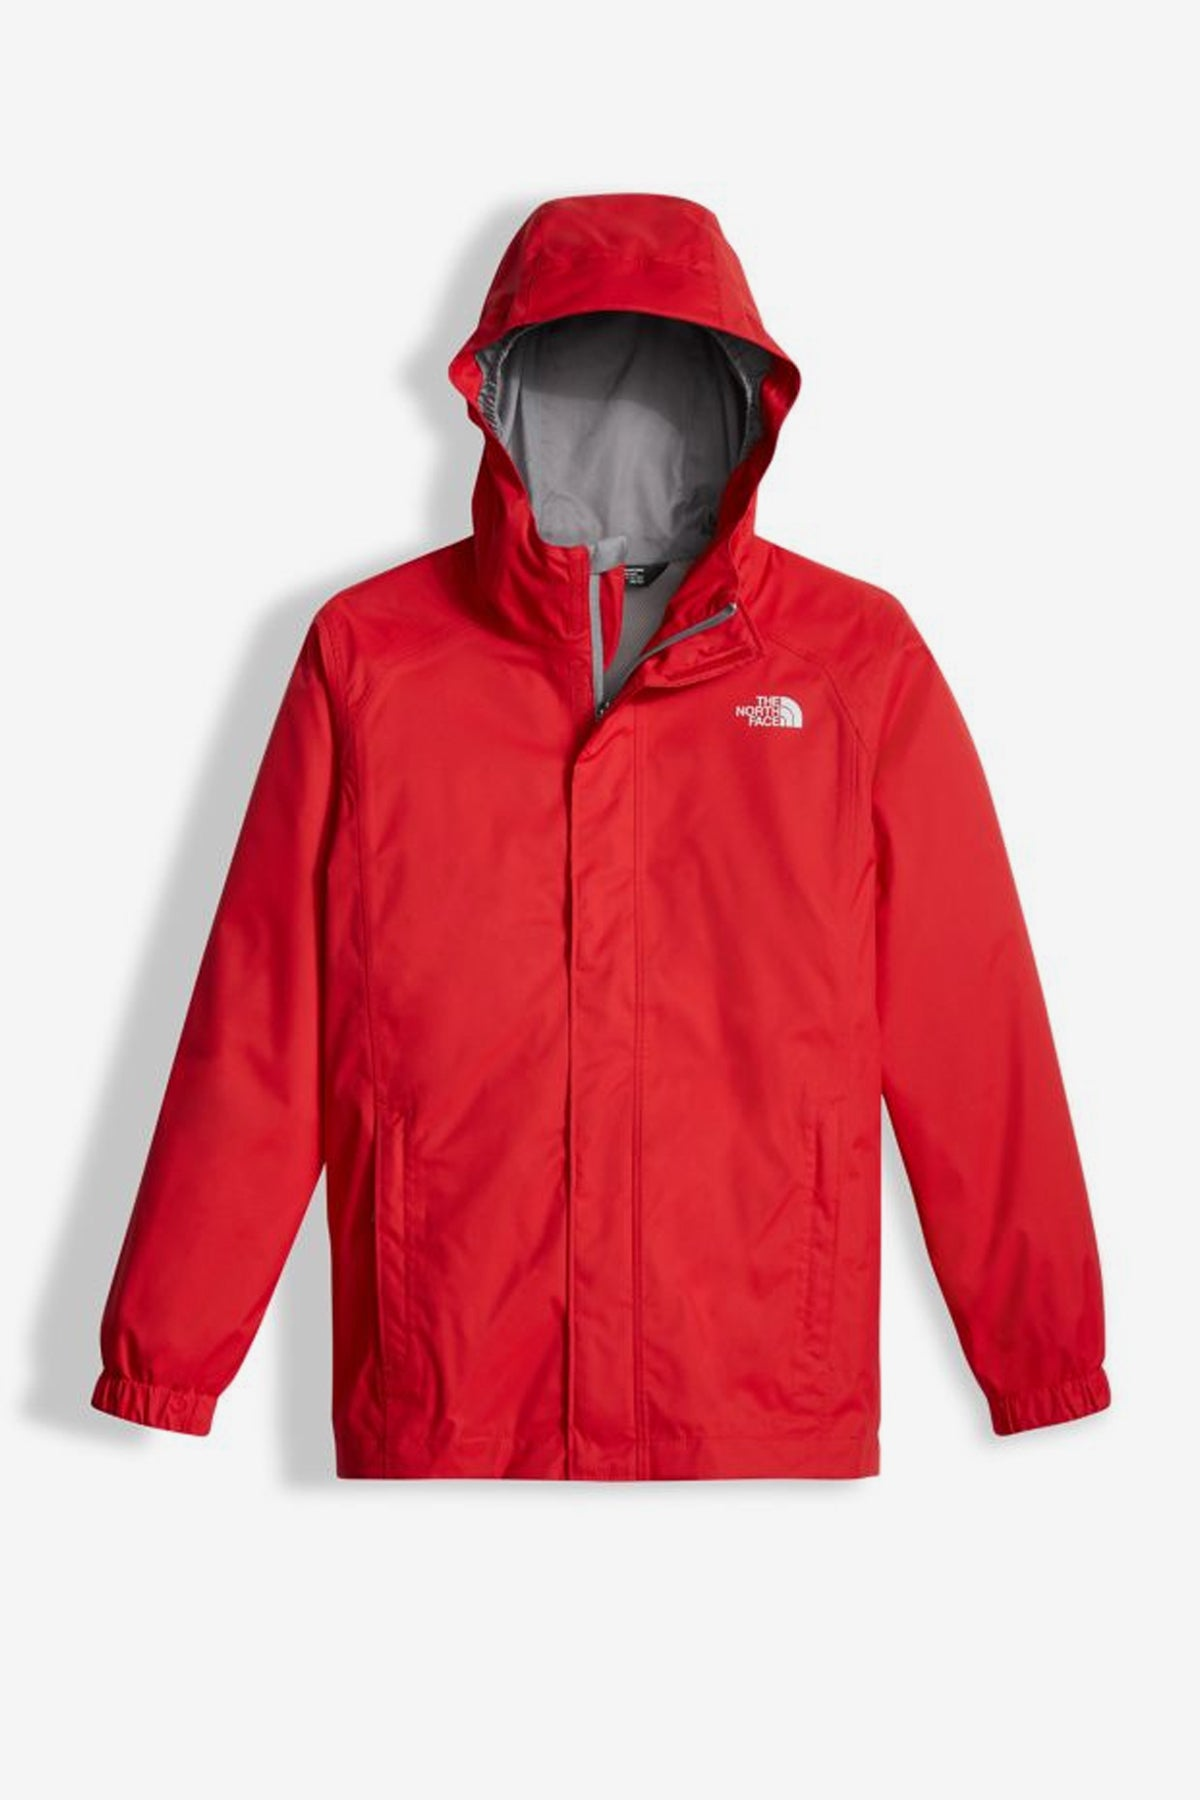 0905bf344d The North Face Boys' Resolve Reflective Rain Jacket - Red - Mini Ruby